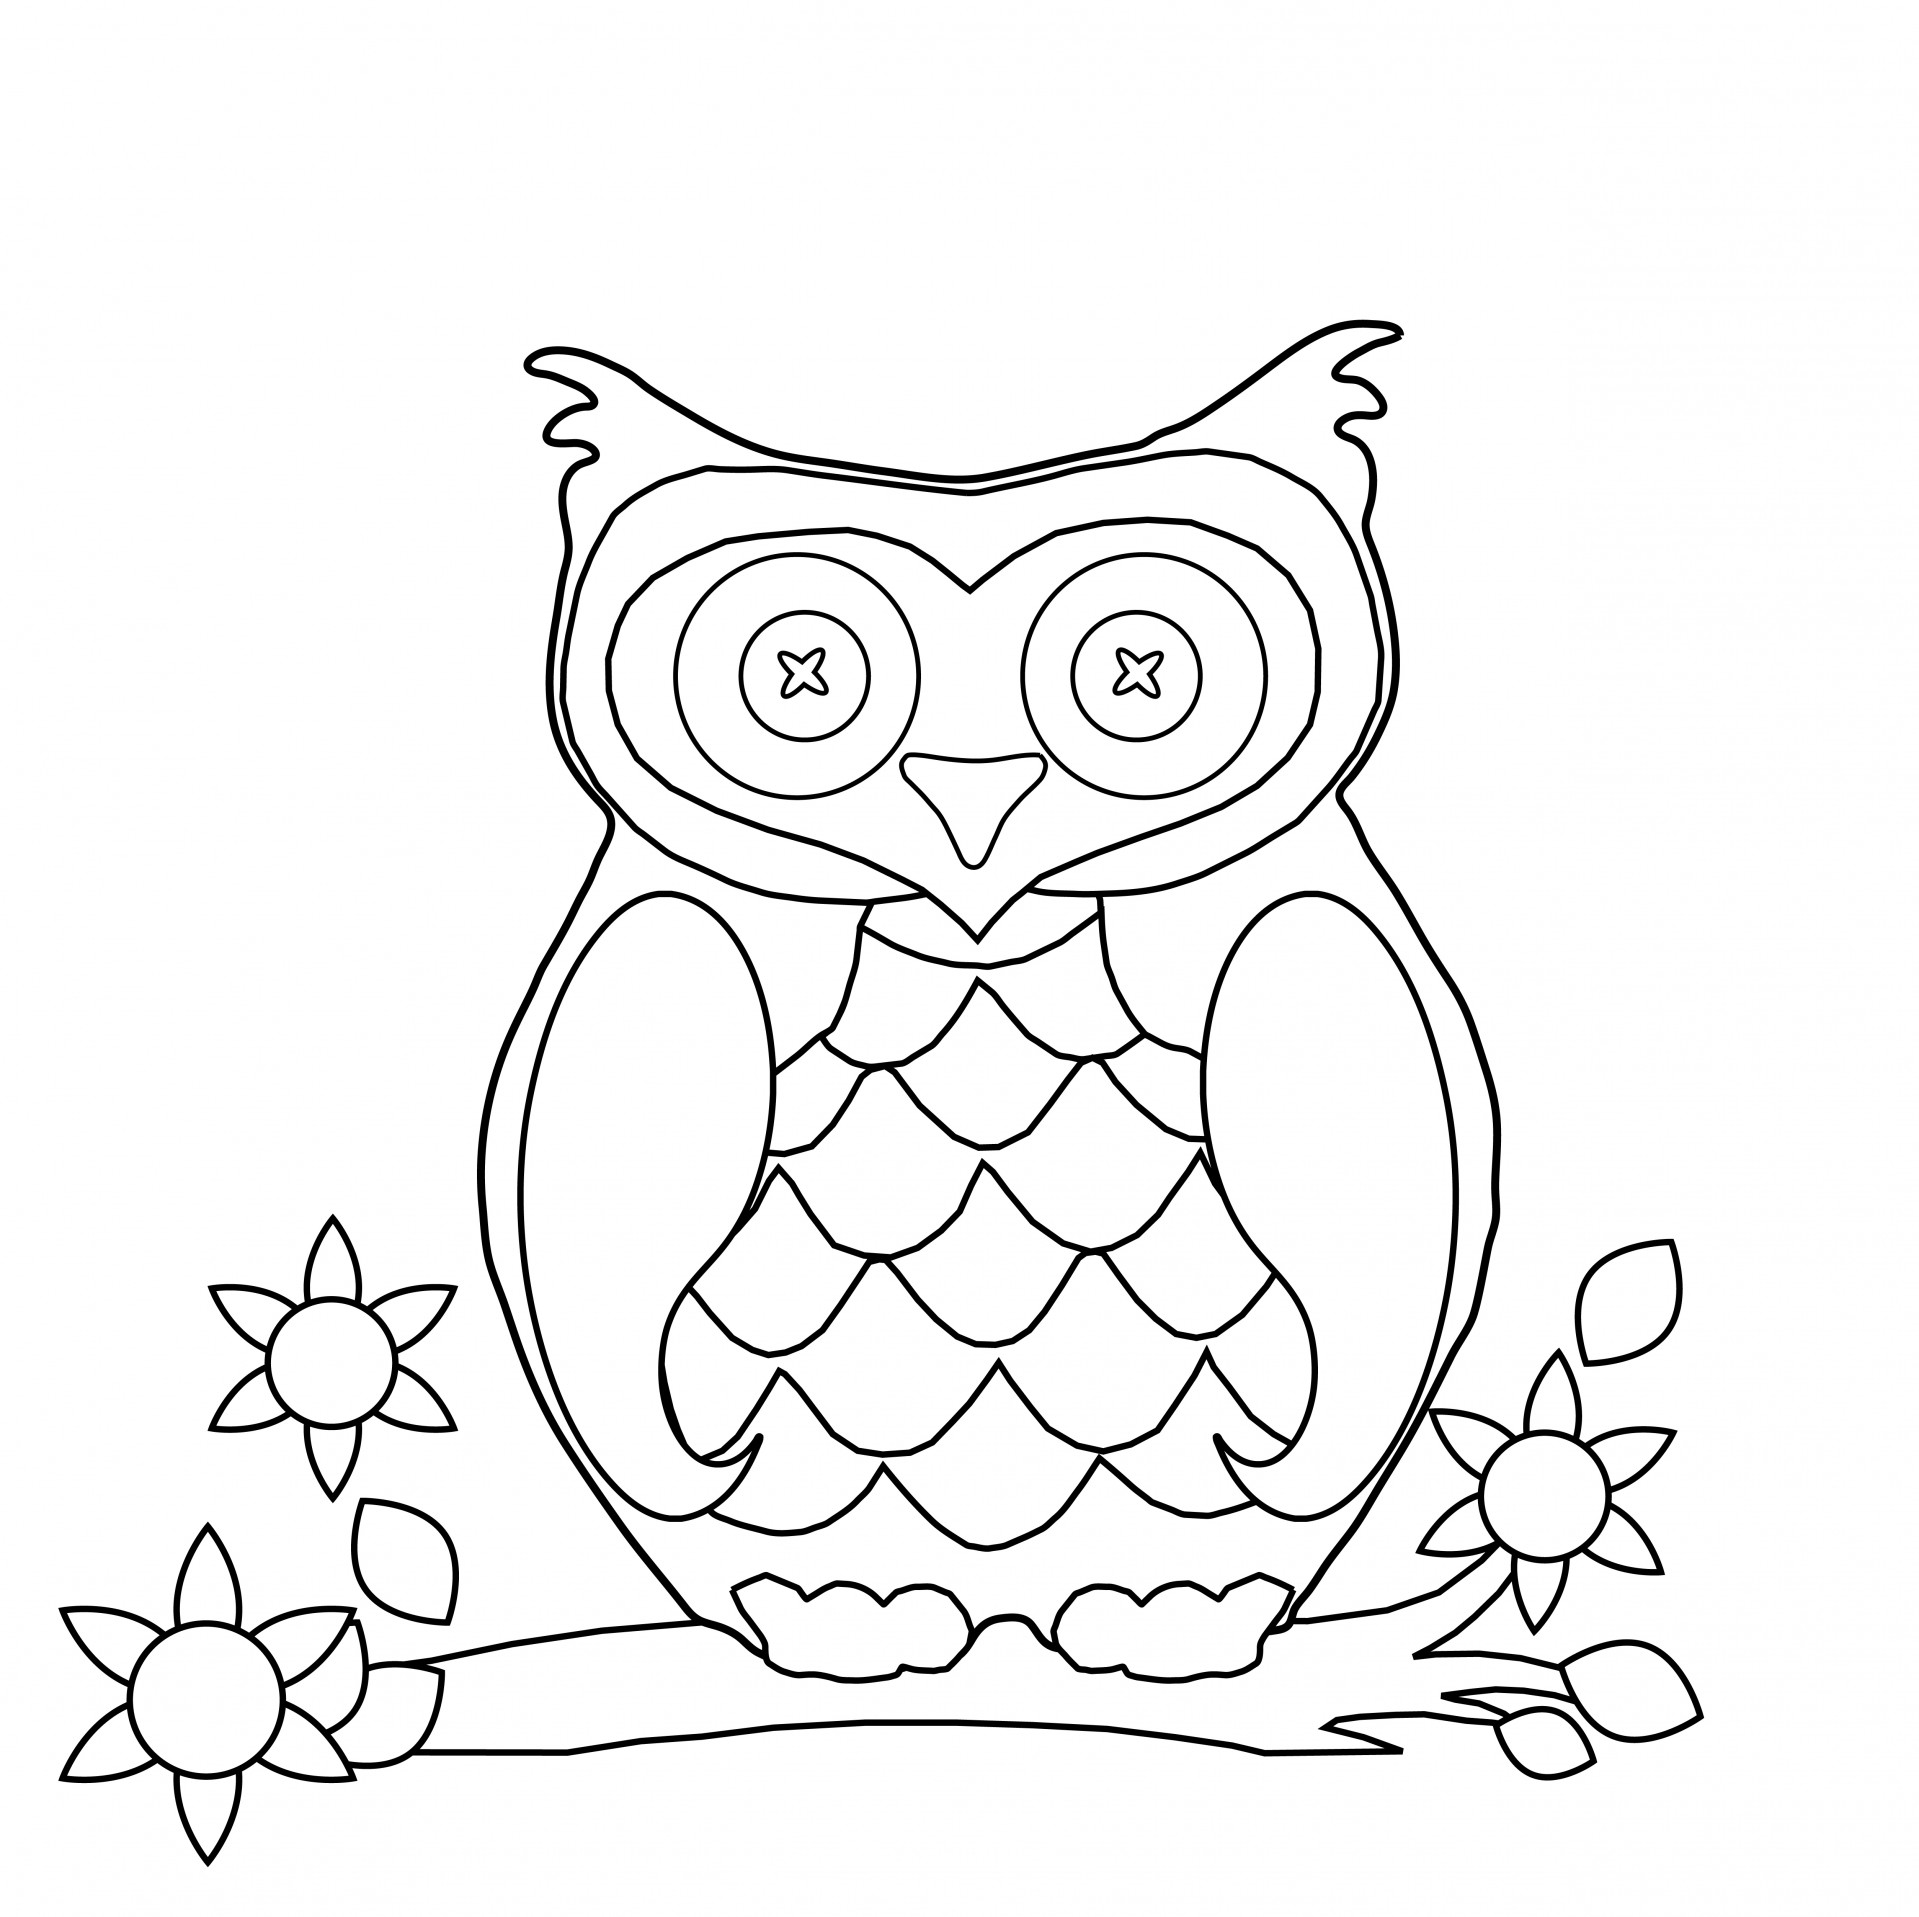 coloring adults free printable abstract coloring pages for adults adults coloring